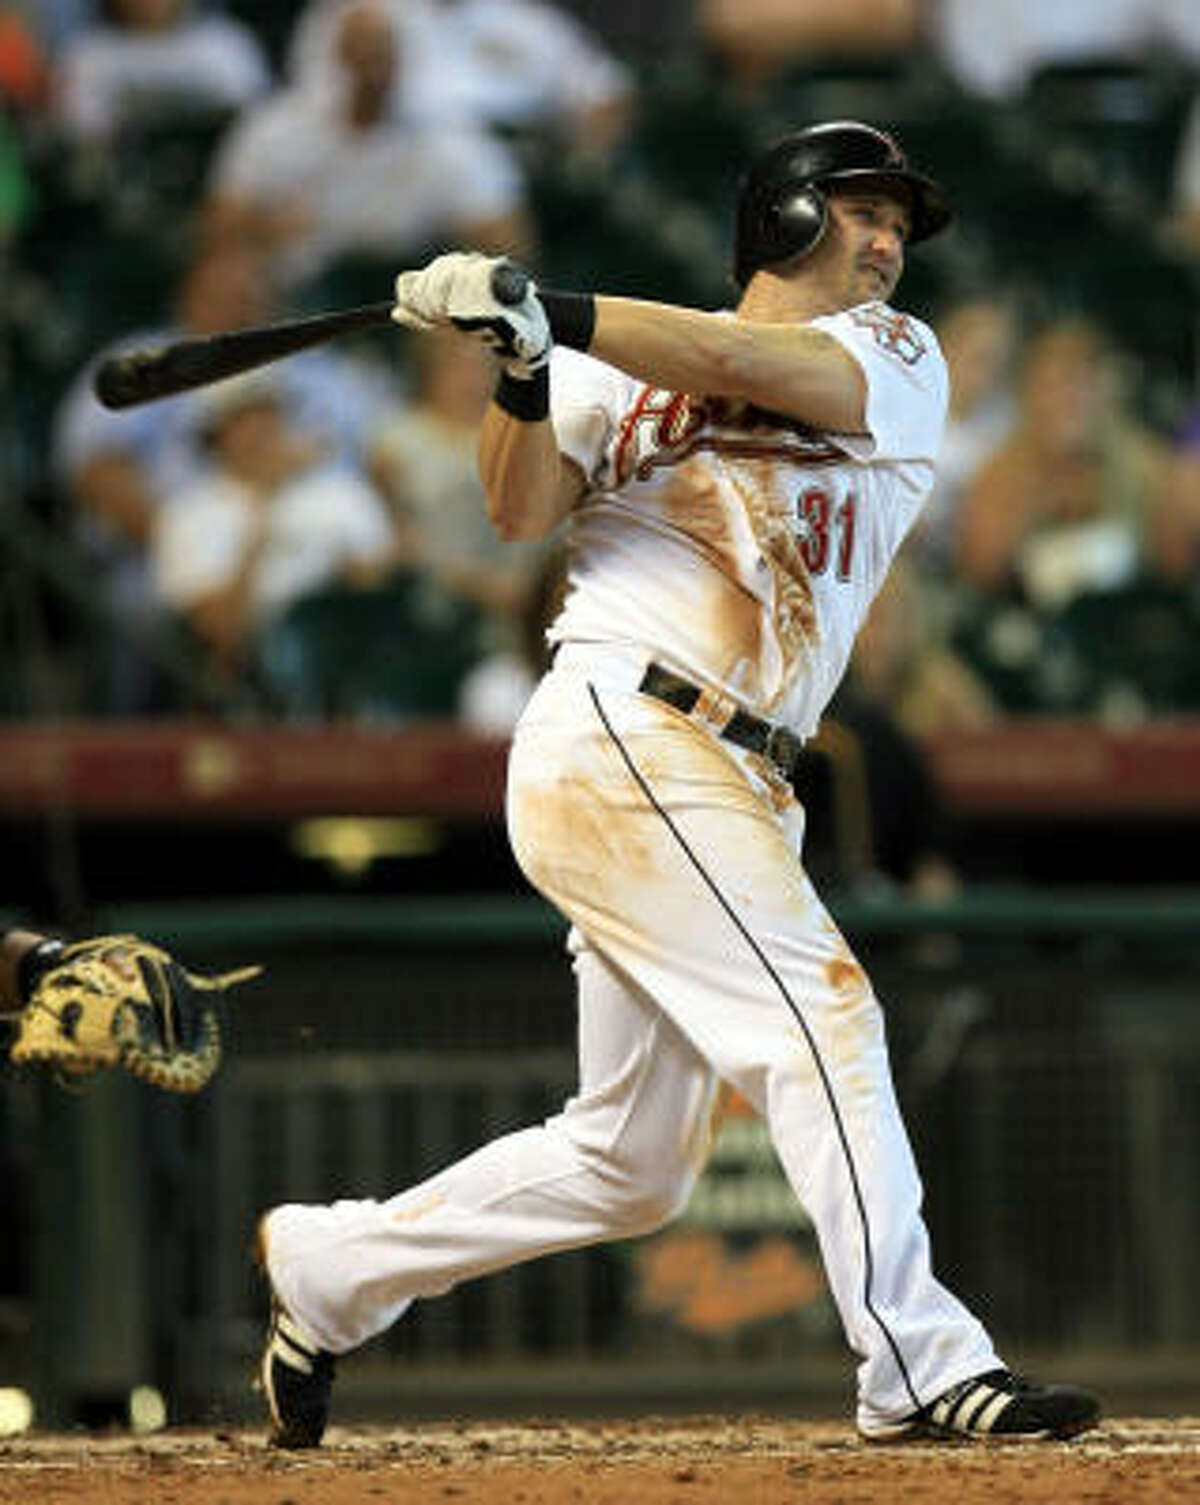 Jan. 29, 2009 David Newhan, 2B. Signed a minor league contract with an invitation to spring training.